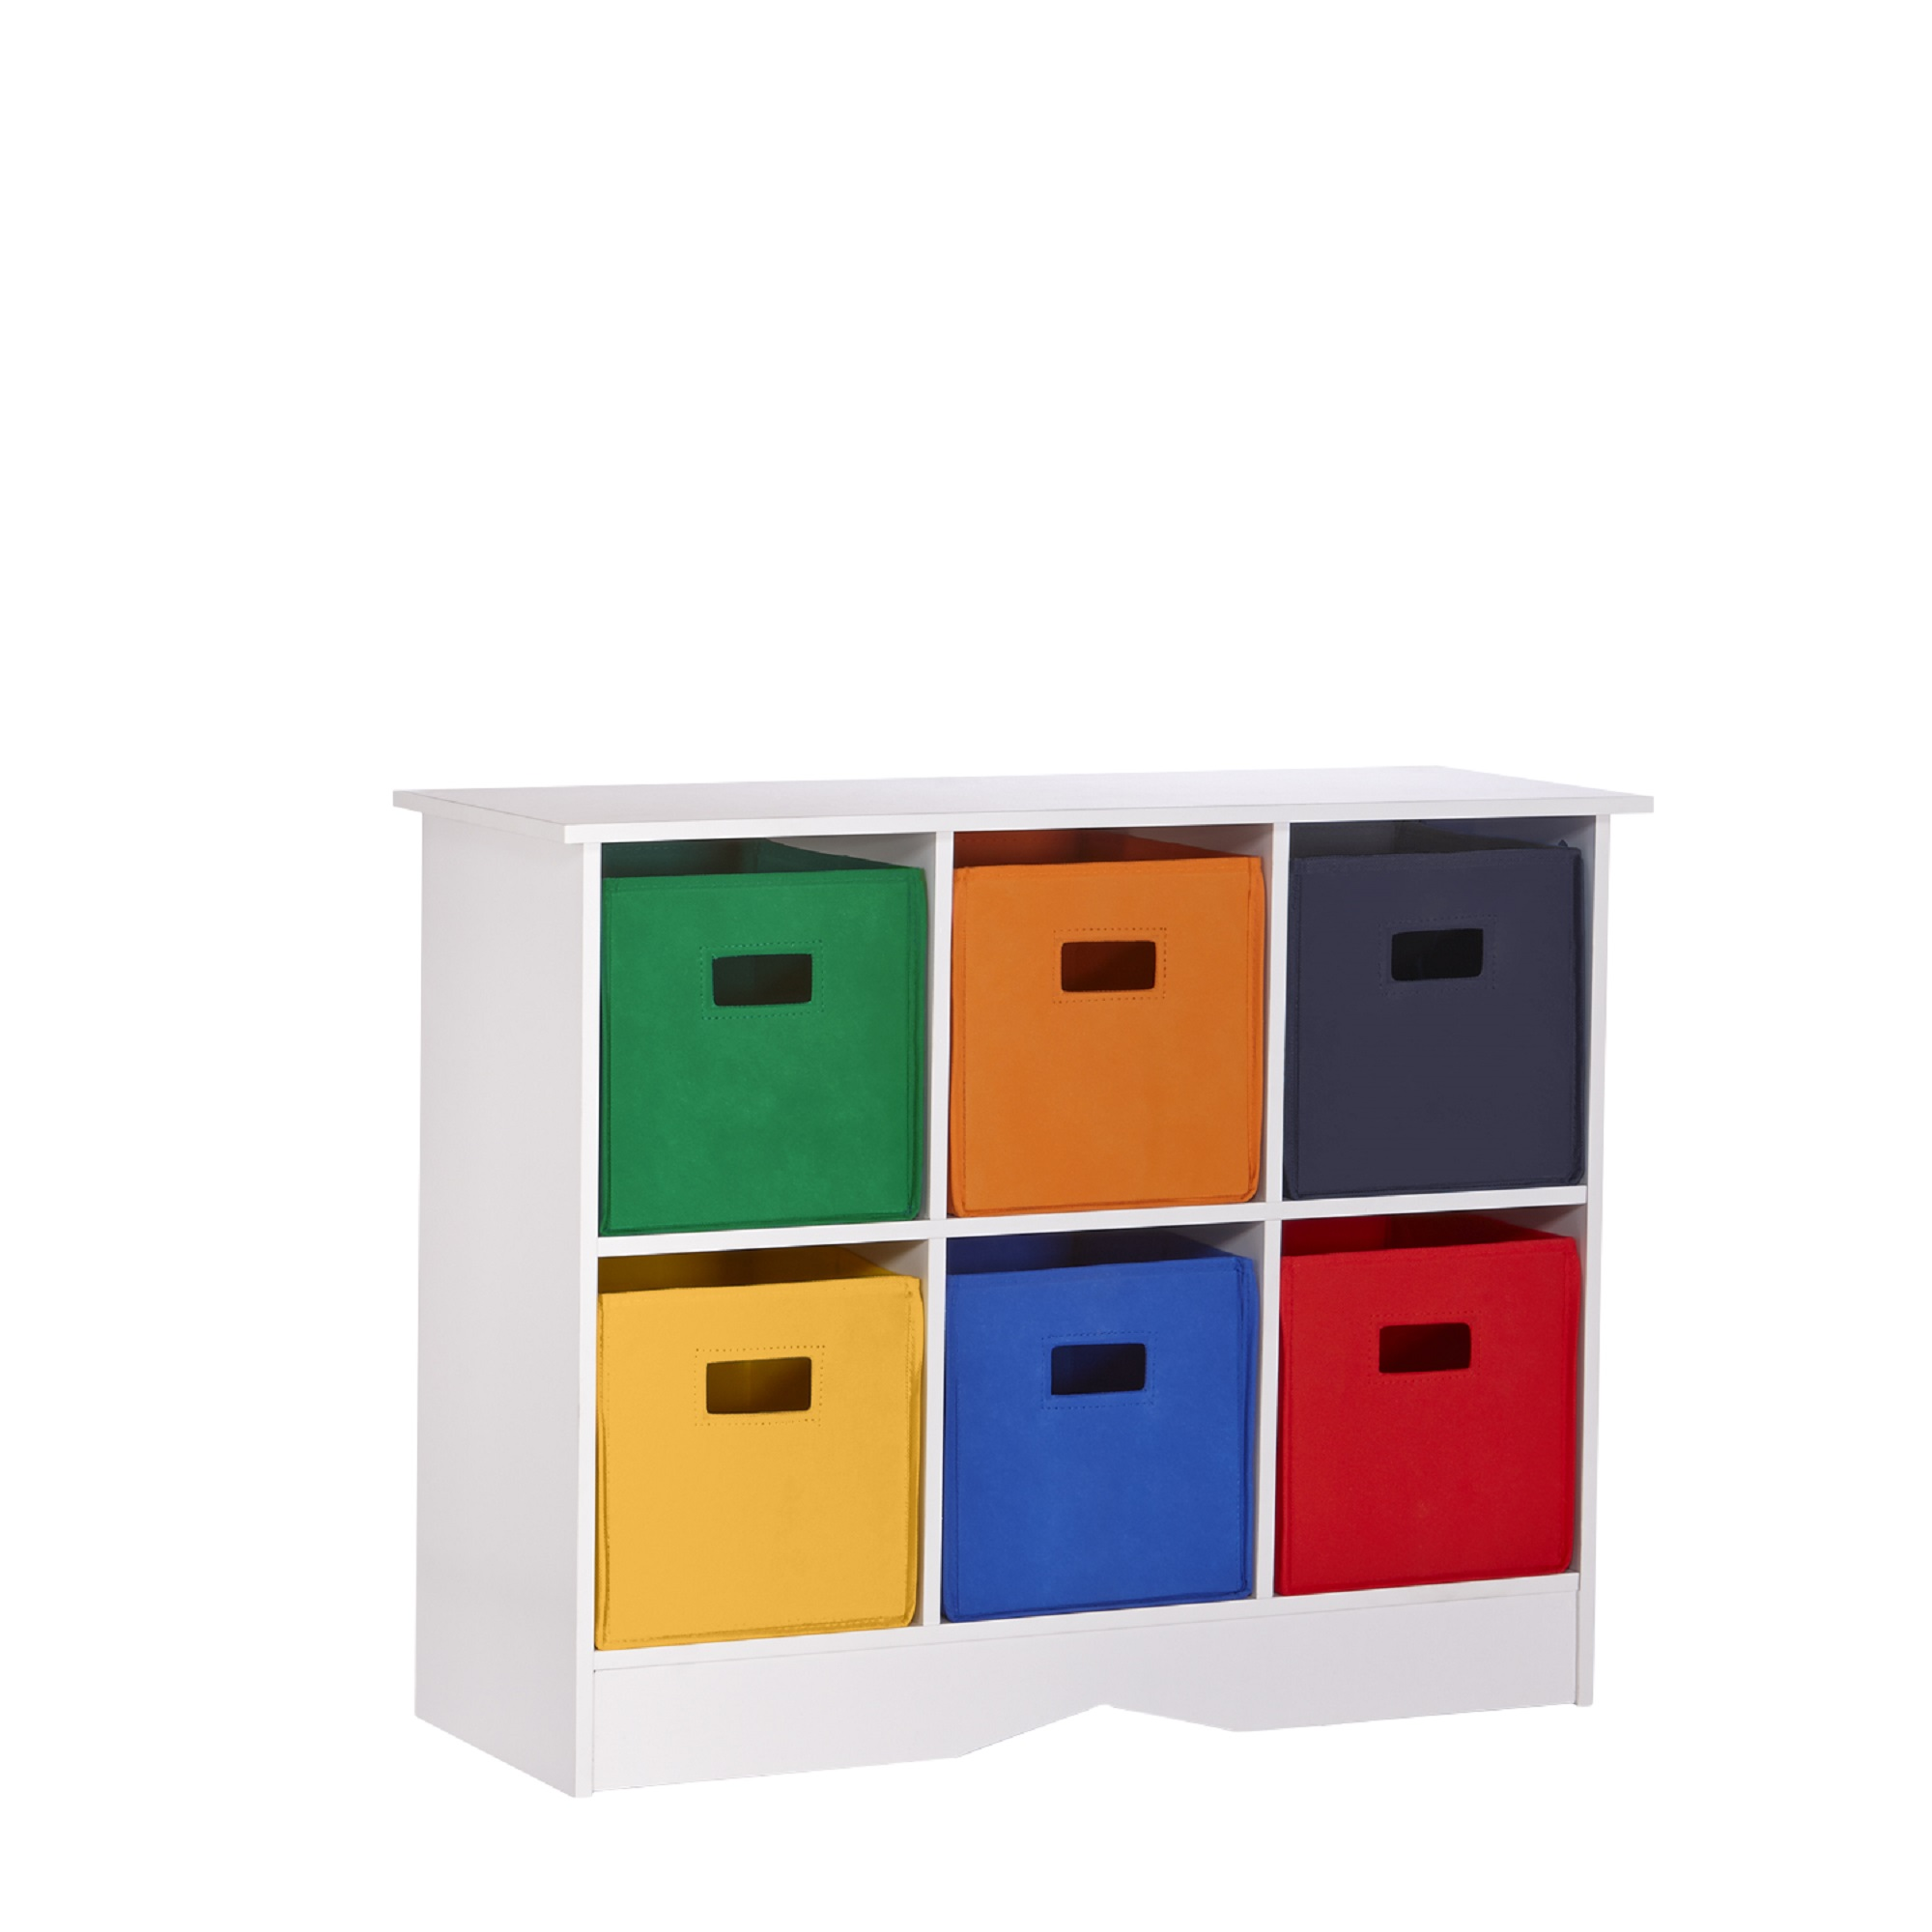 RiverRidge Kids 6 Bin Storage Cabinet Espresso Primary by Sourcing Solutions, Inc.